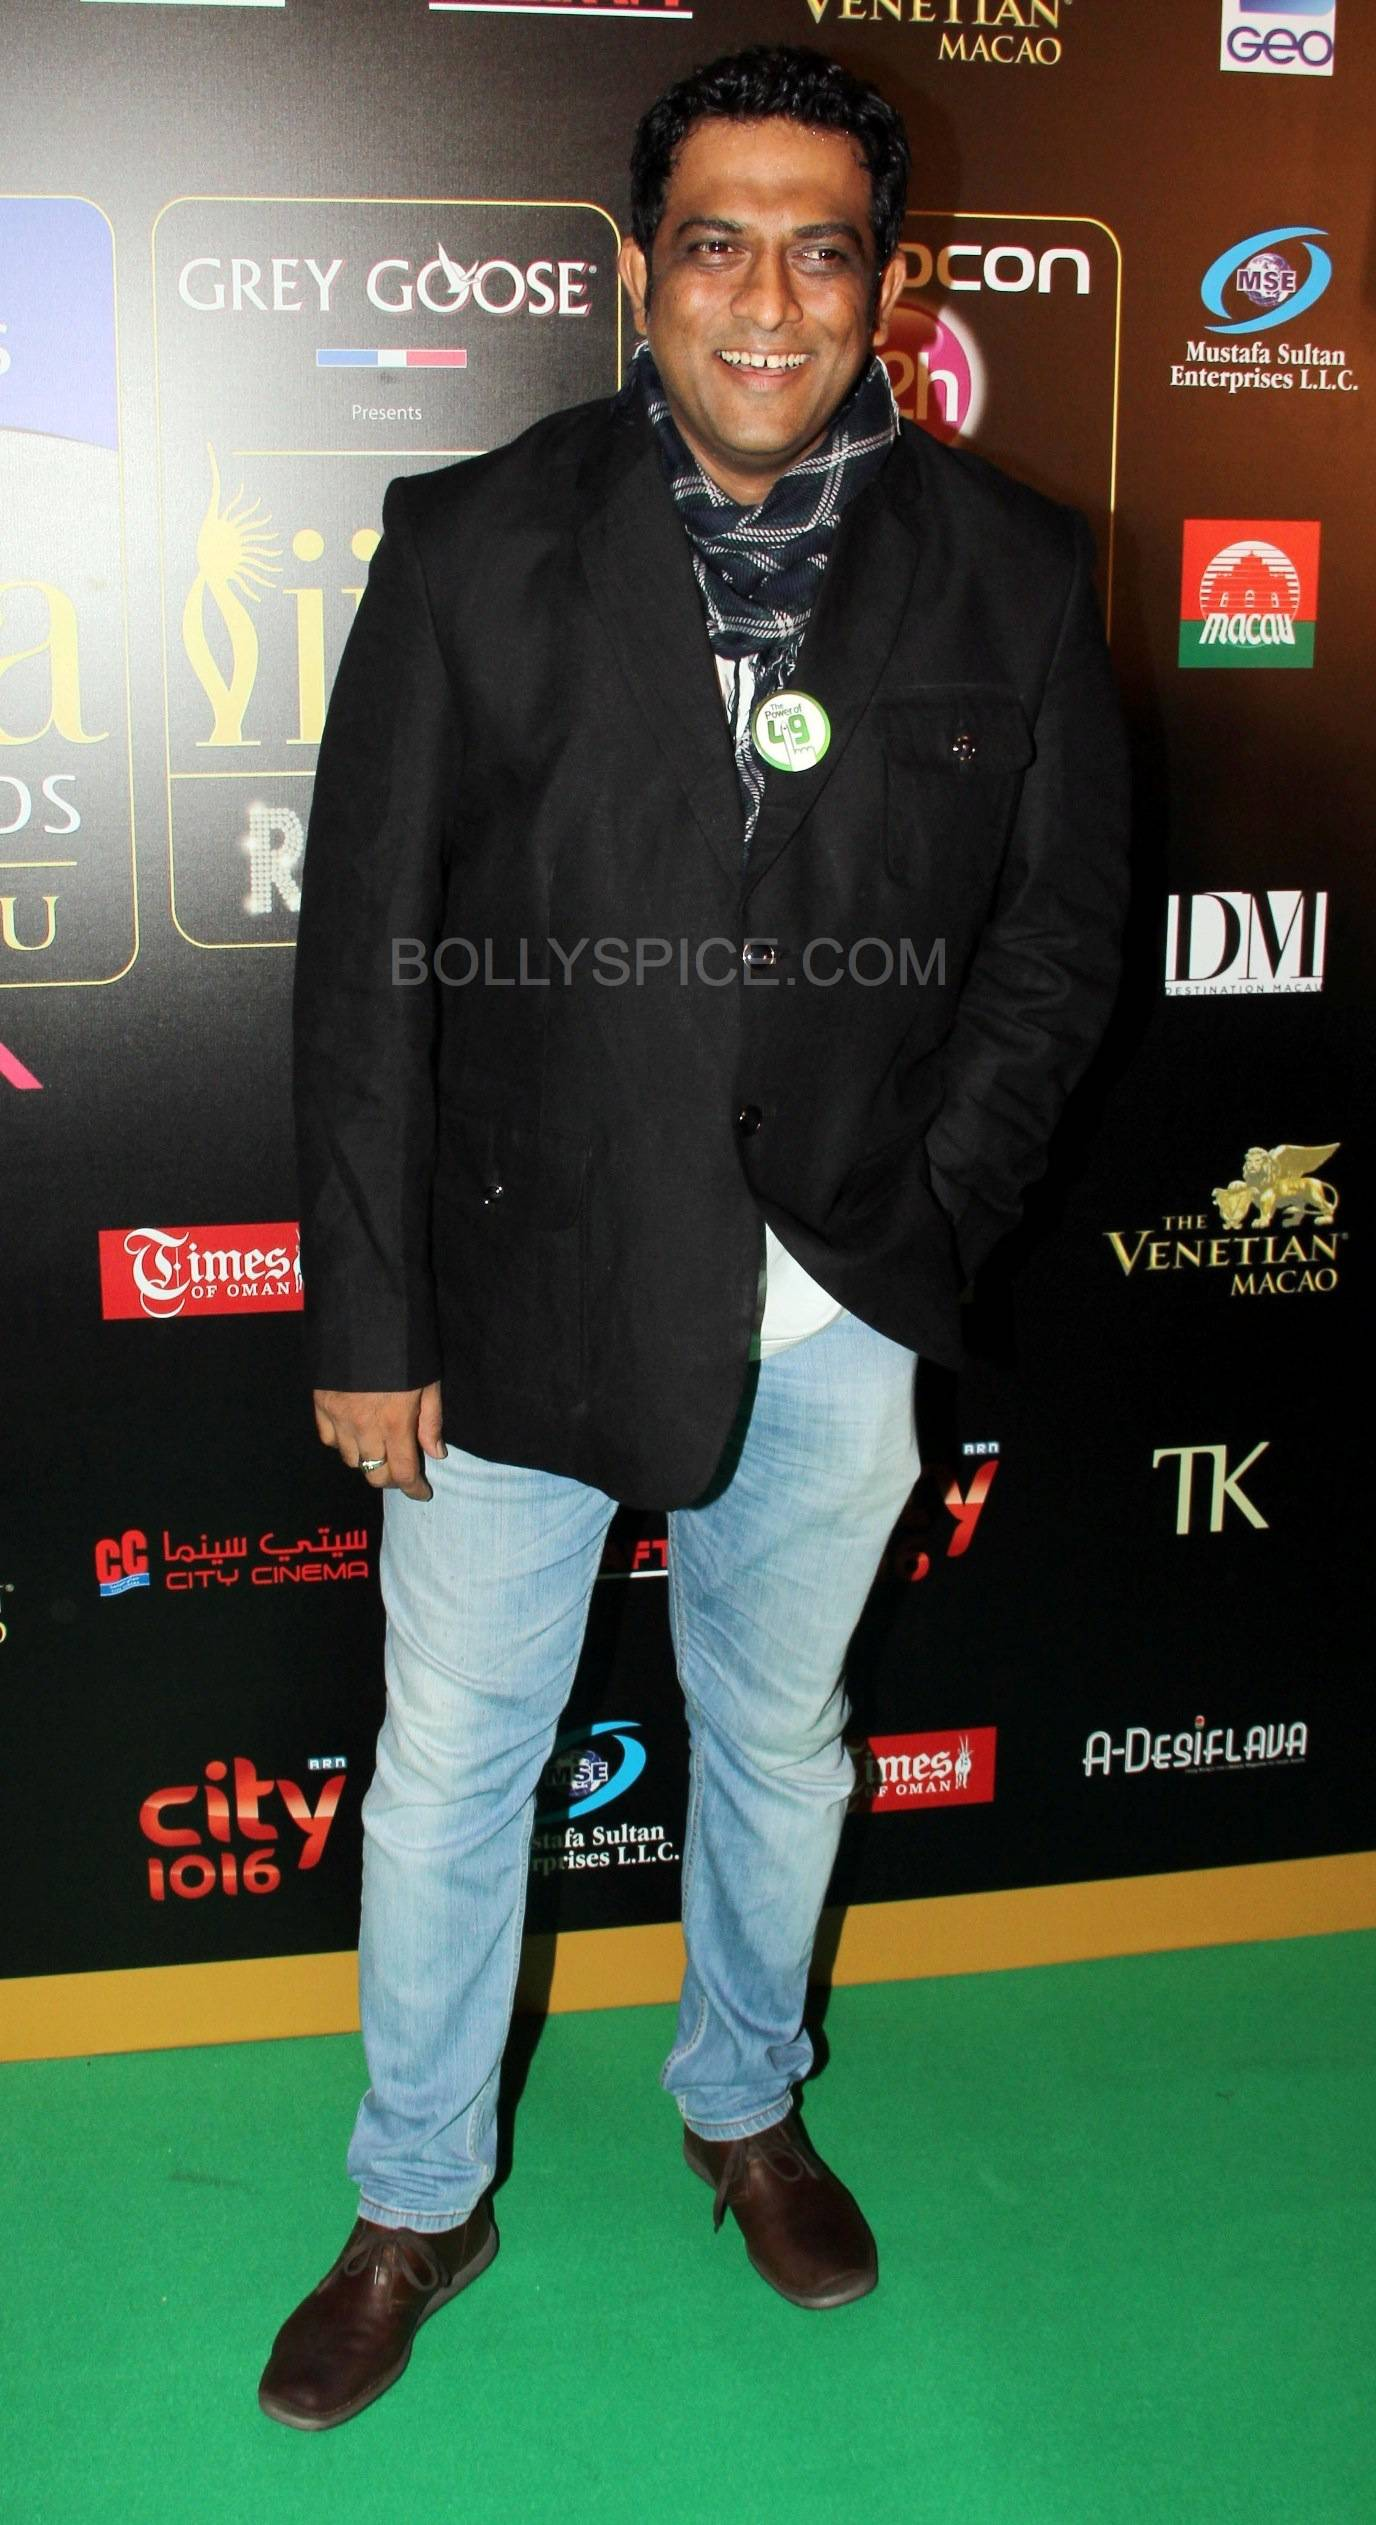 Anurag Basu at IIFA Rocks Green carpet More from IIFA Rocks including winners and more Green Carpet pics! Pics added!